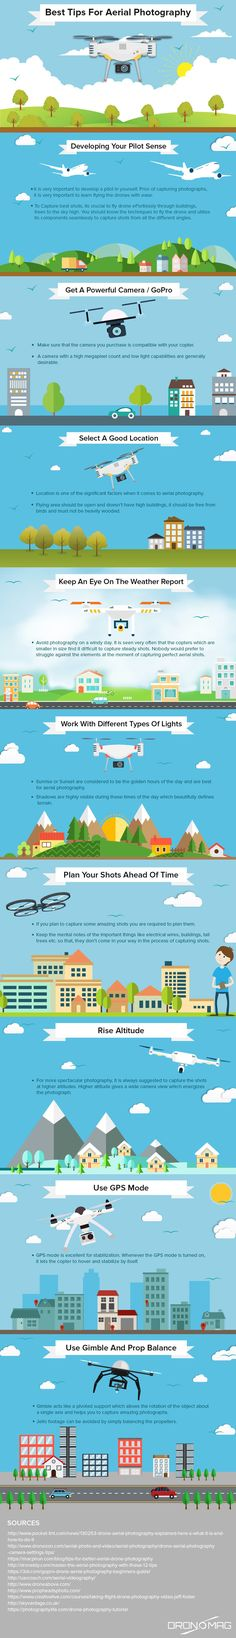 Tips for Using Drone for Aerial Photography Infographic #camera #gadget